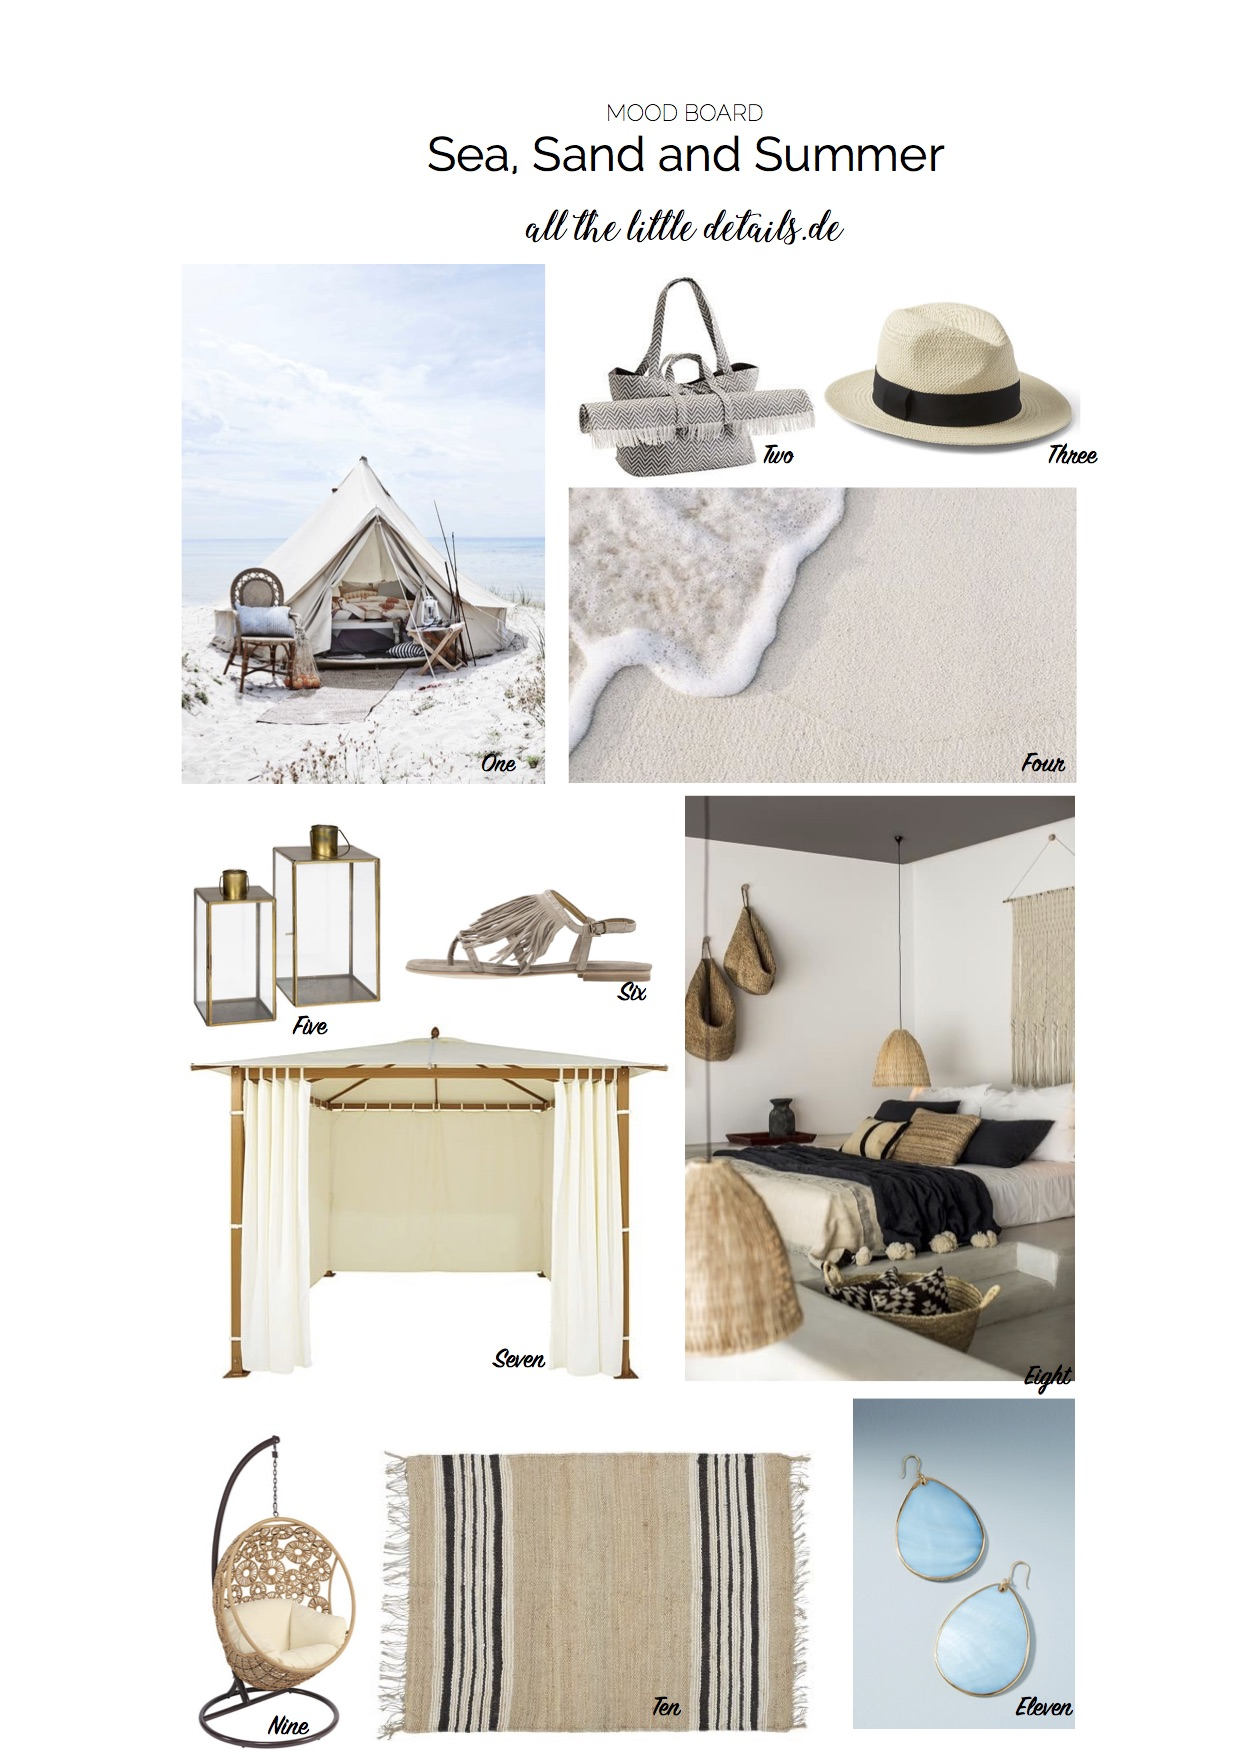 sea, sand and summer mood board allthelittledetails.de